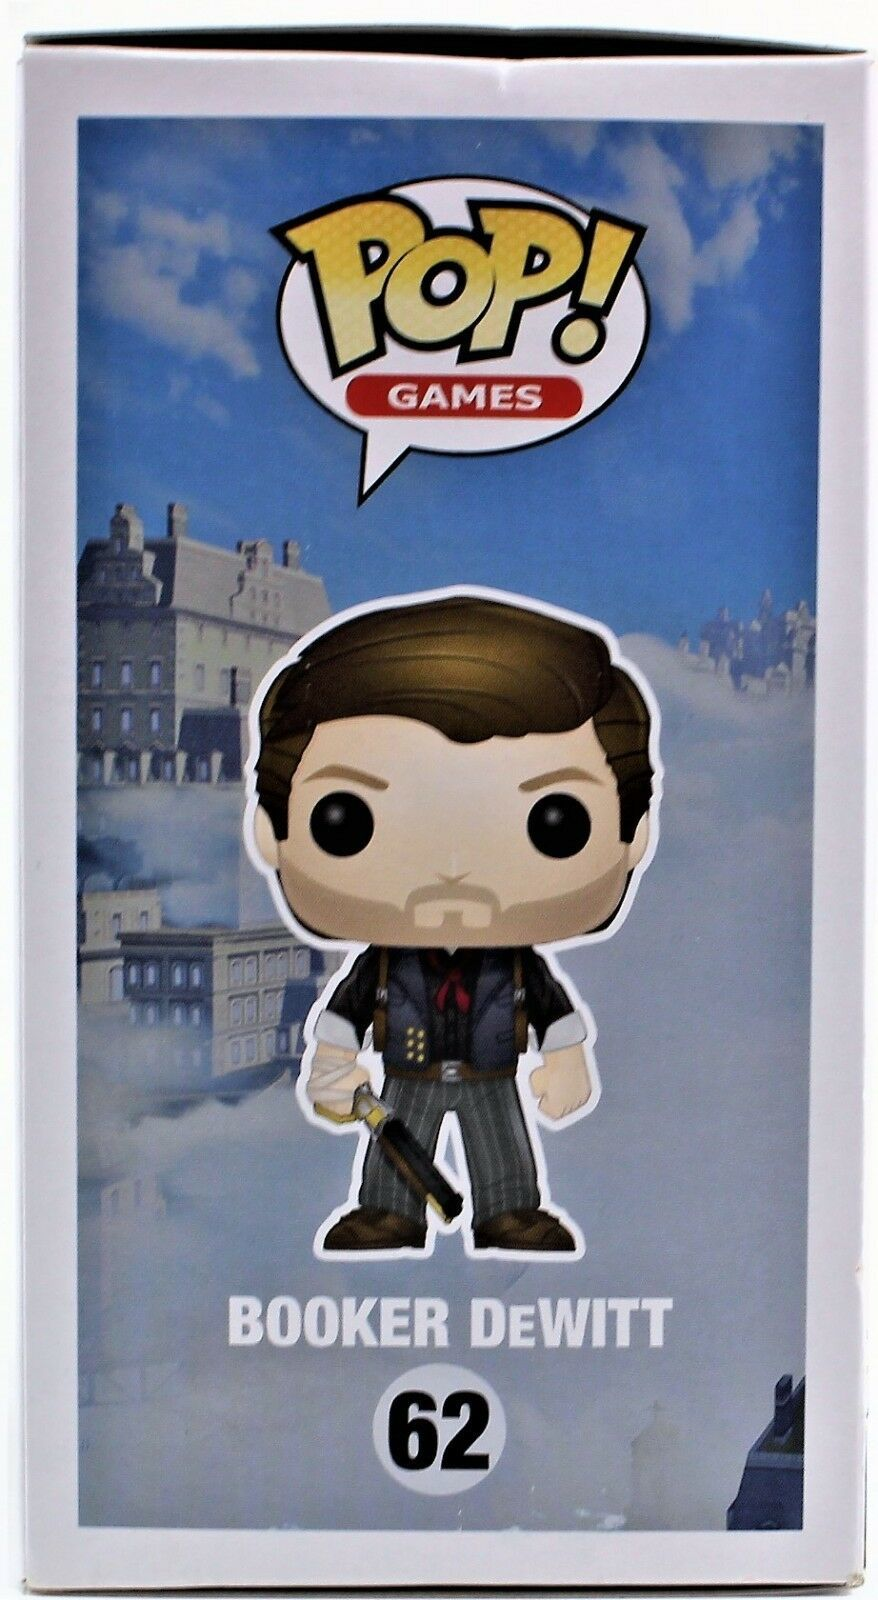 BioShock Infinite Booker DeWitt Pop! Vinyl Figure image 5